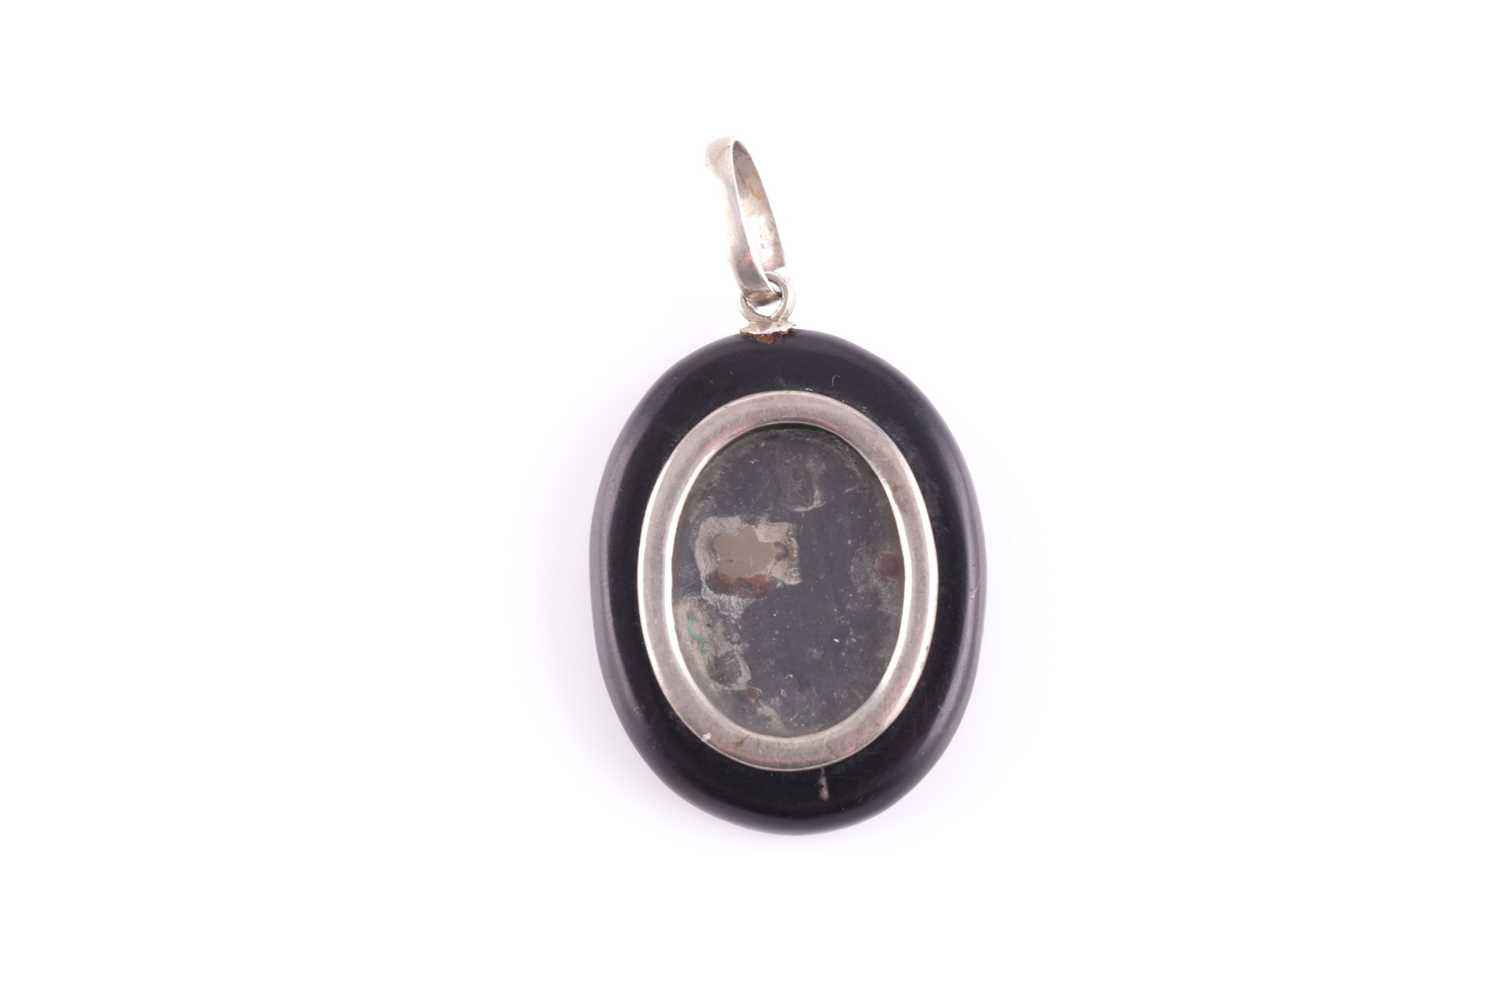 A silver and black hardstone pendant locket, the back inset with a pietra dura design of a flower - Image 2 of 2